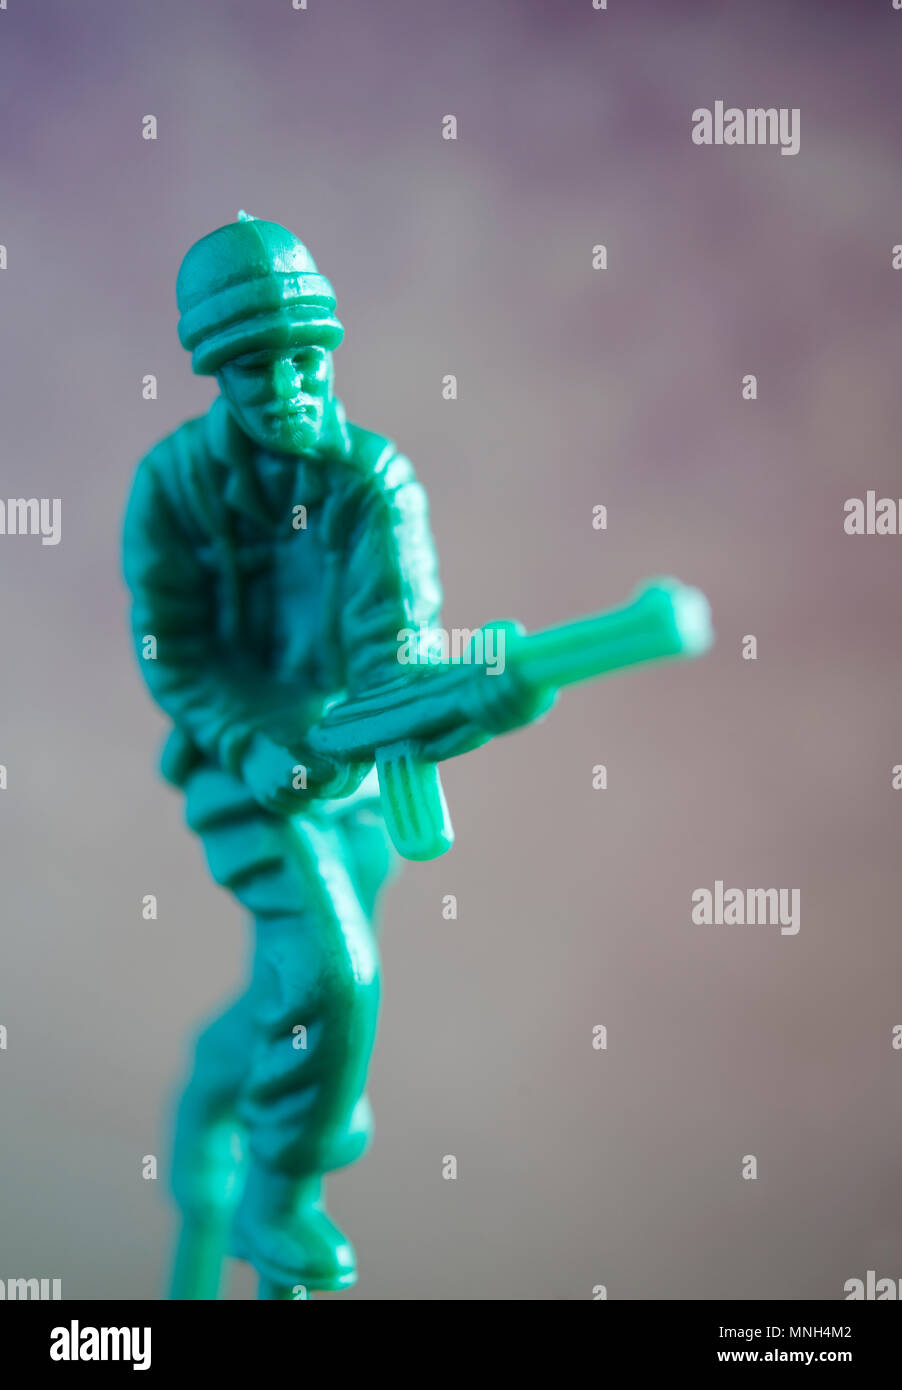 Still life of a plastic toy soldier - Stock Image